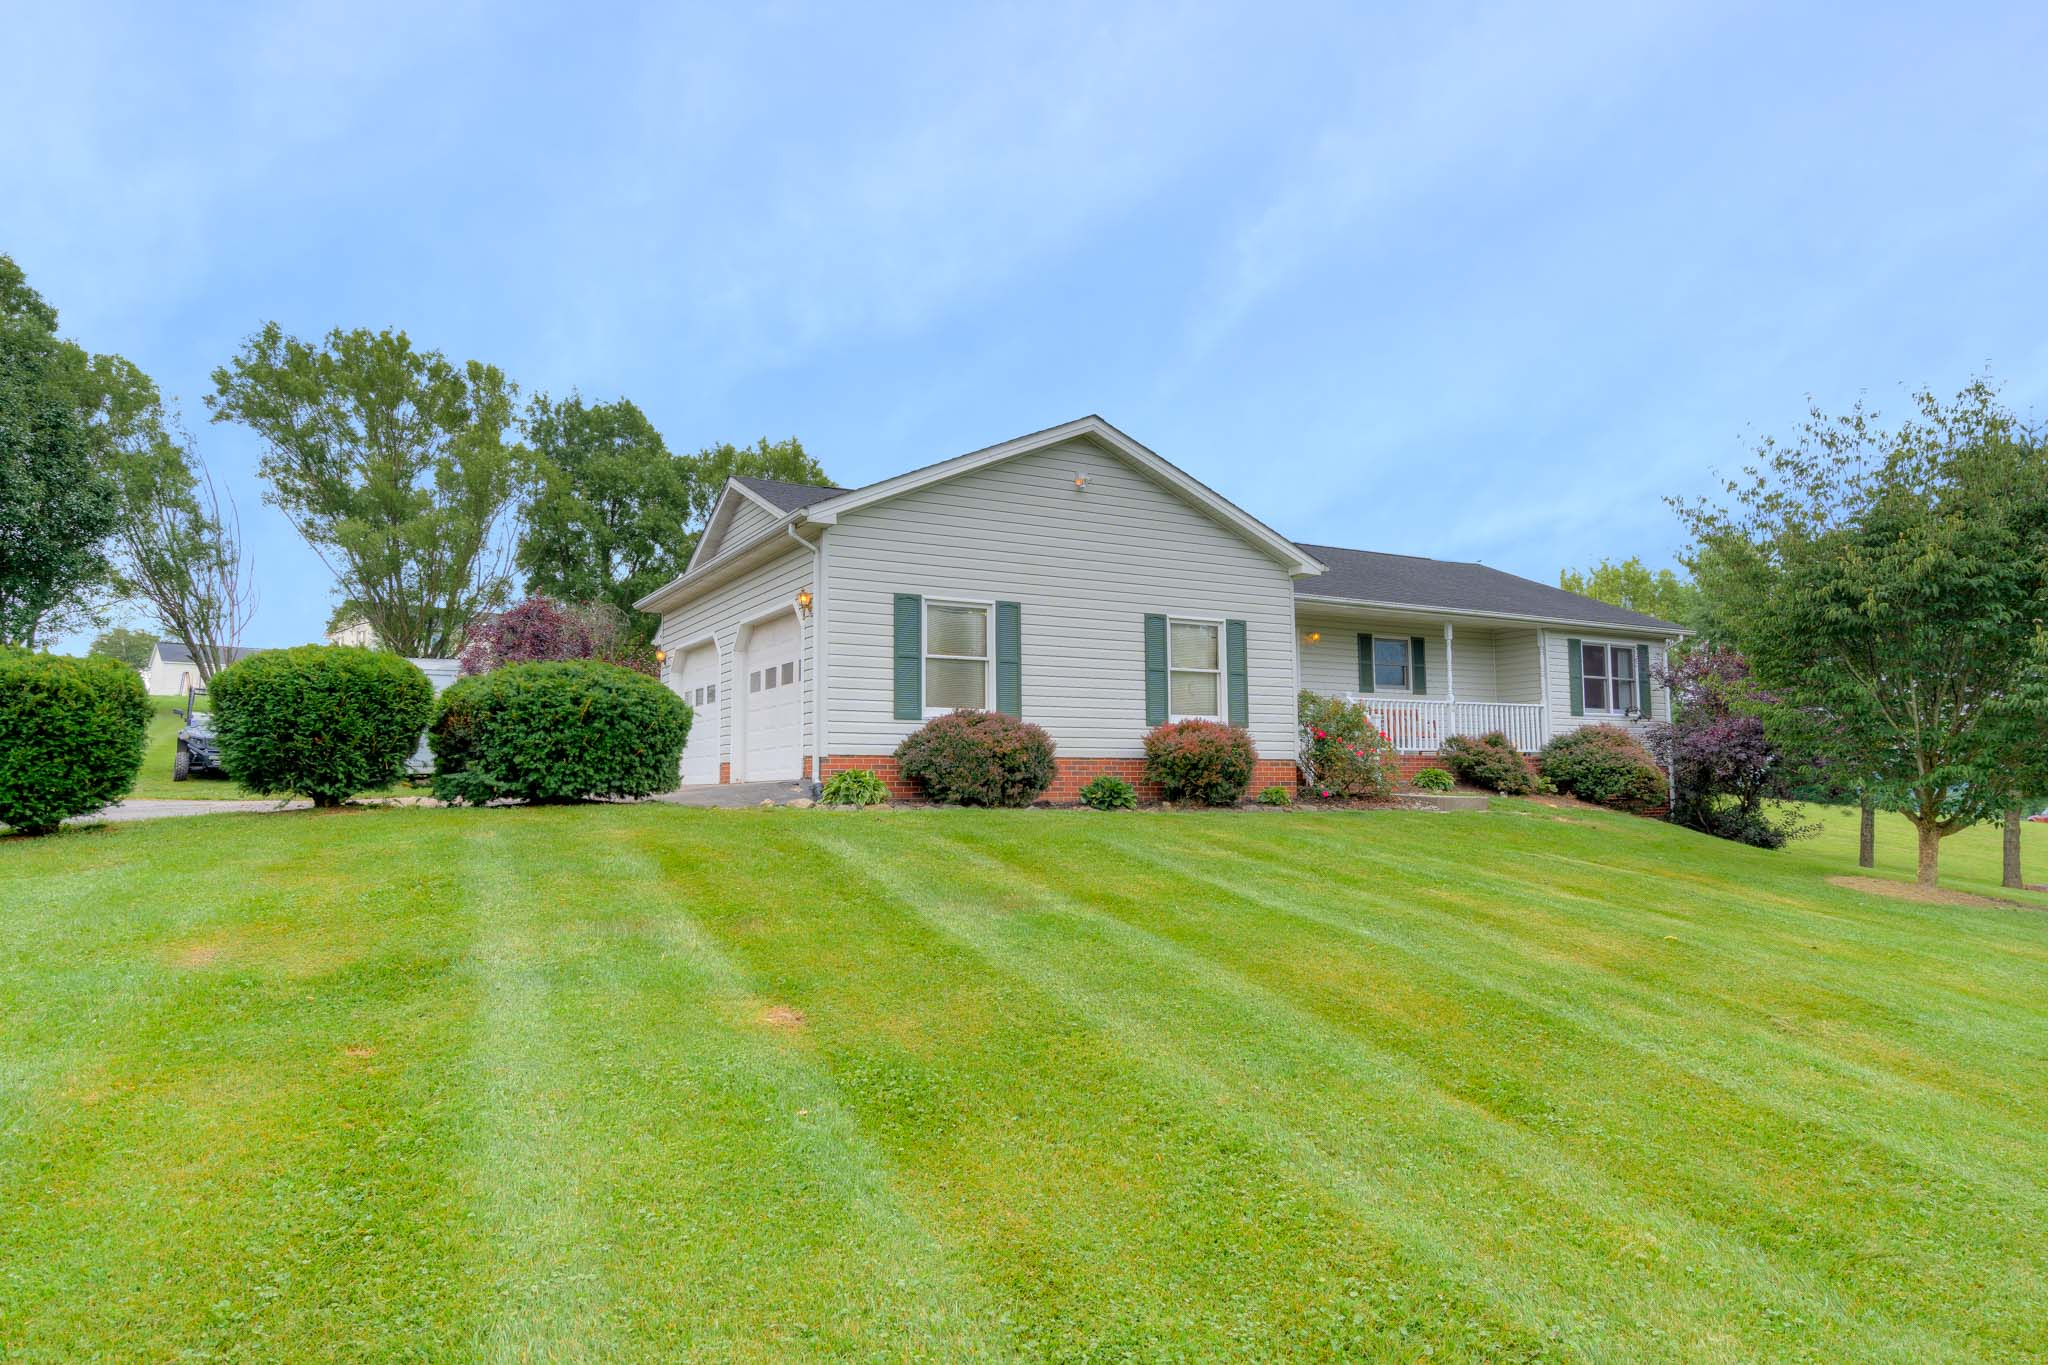 1445 West View Dr Christiansburg VA Beautiful Ranch Home in Serene